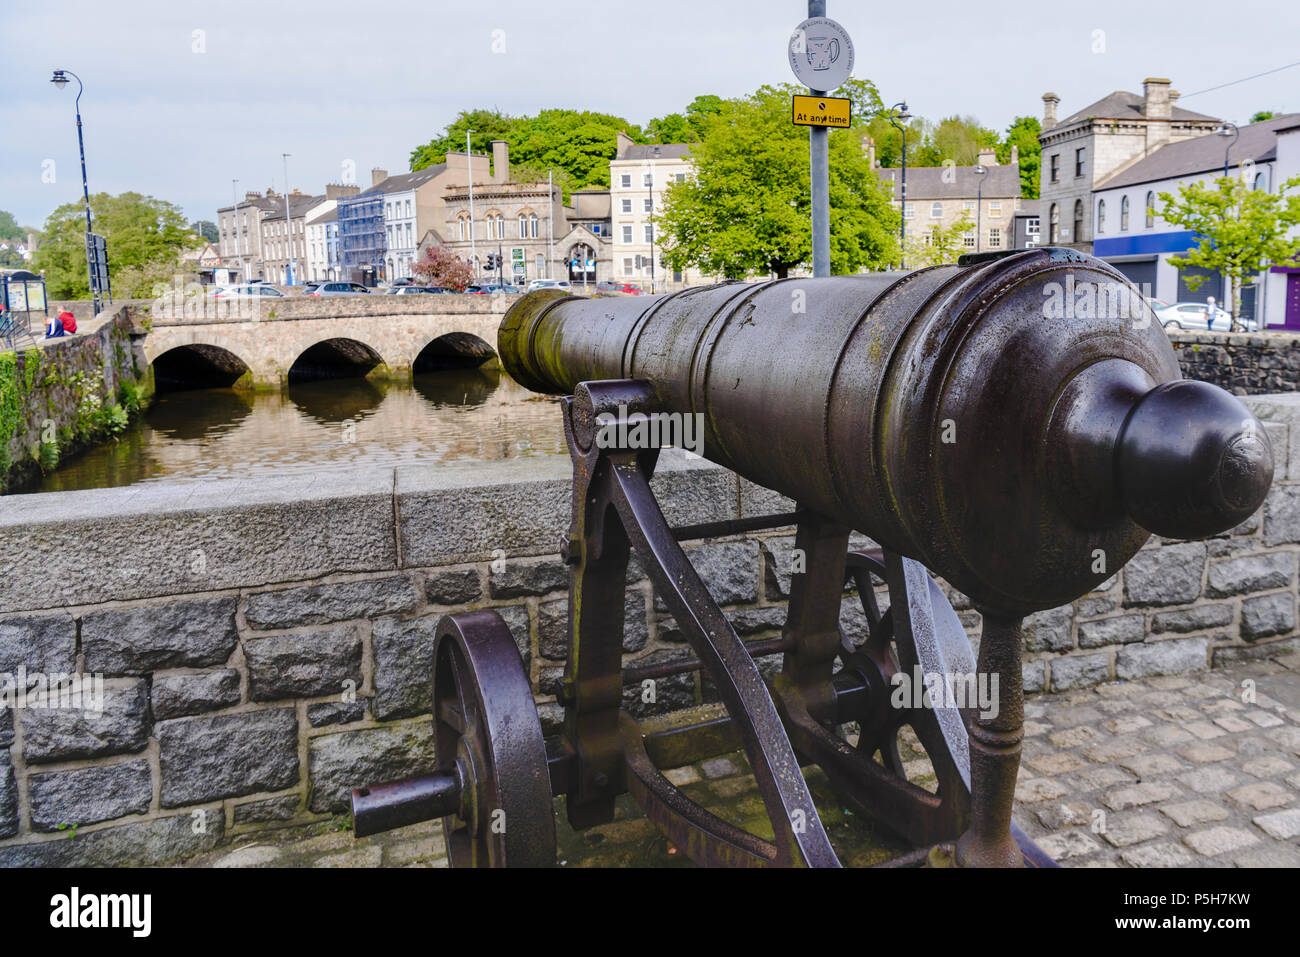 17th Century cast iron cannon on a bridge over the canal at Newry, Northern Ireland. - Stock Image